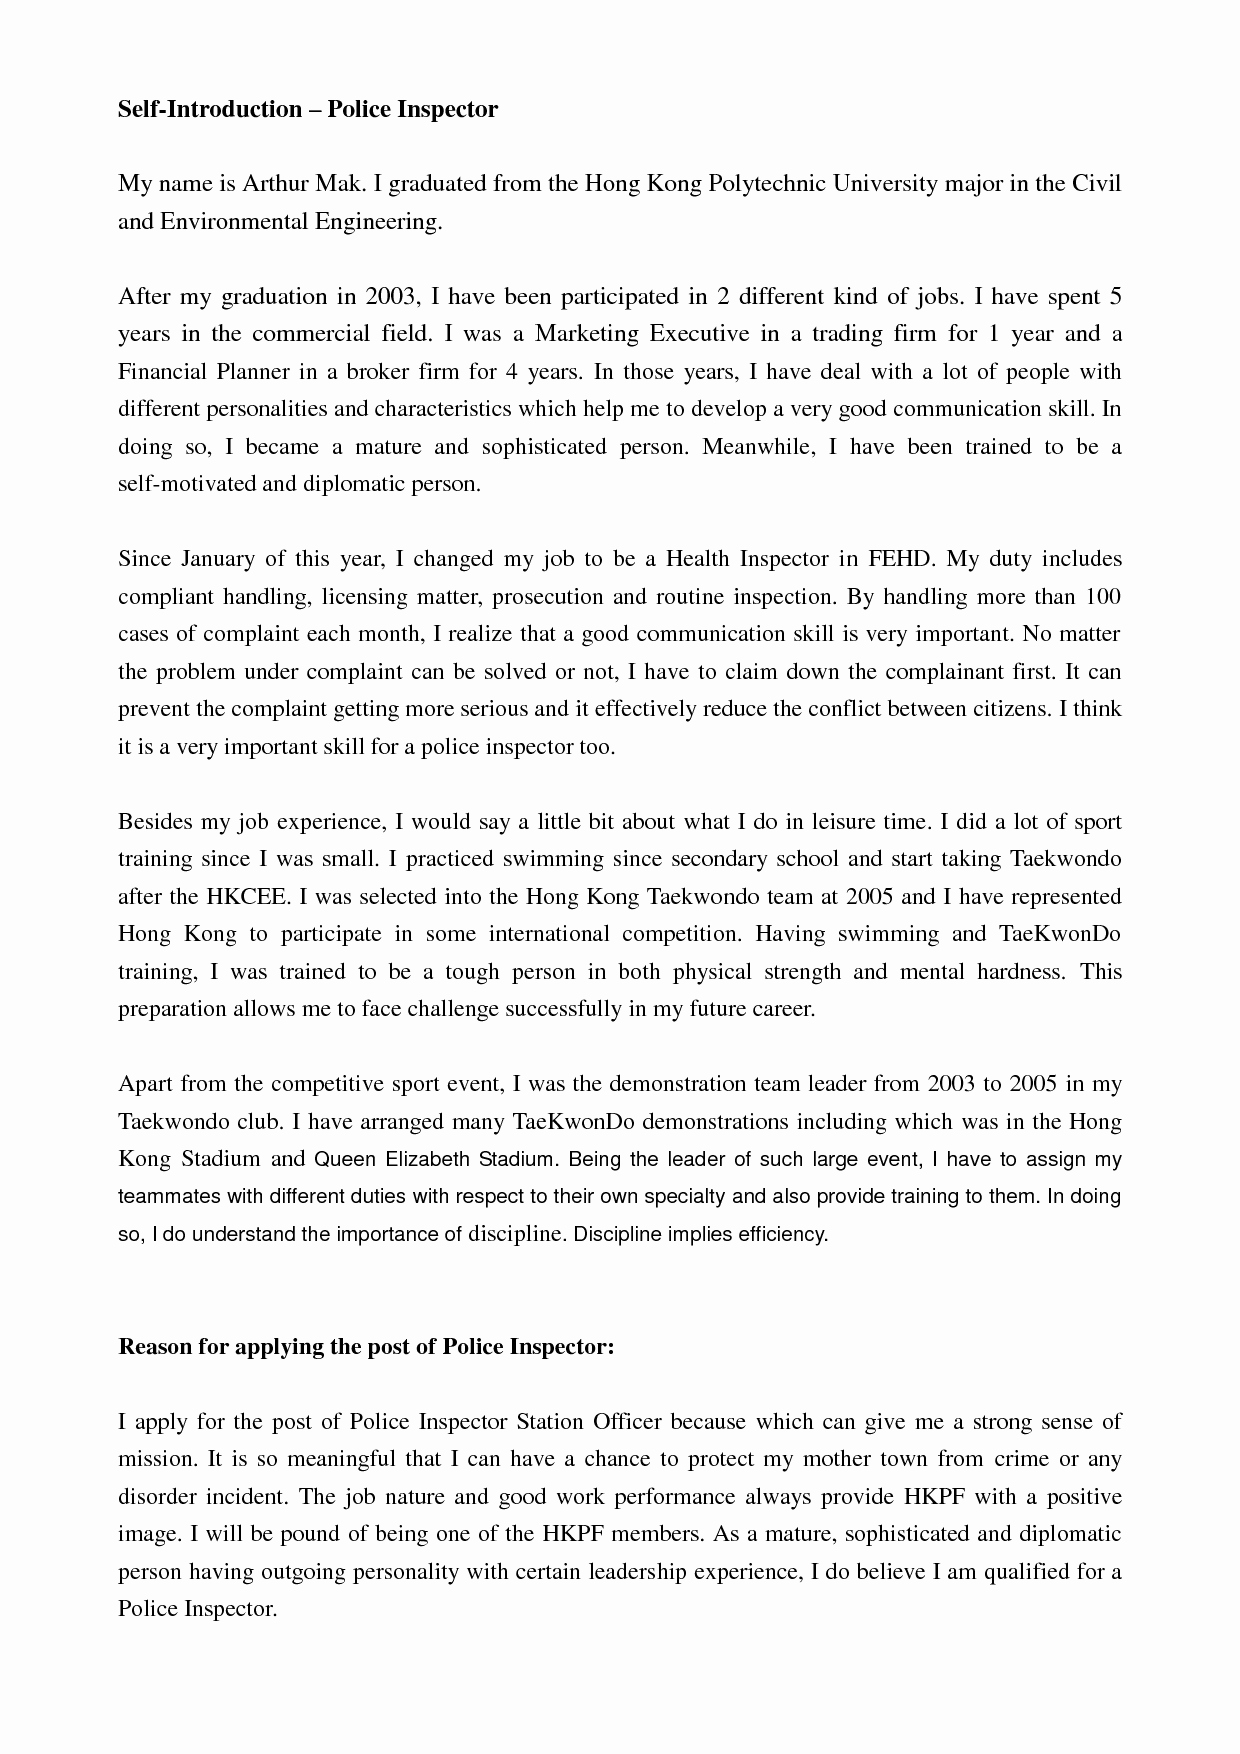 Self Introduction Letter Sample New Best S Of Professional Self Introduction Letter